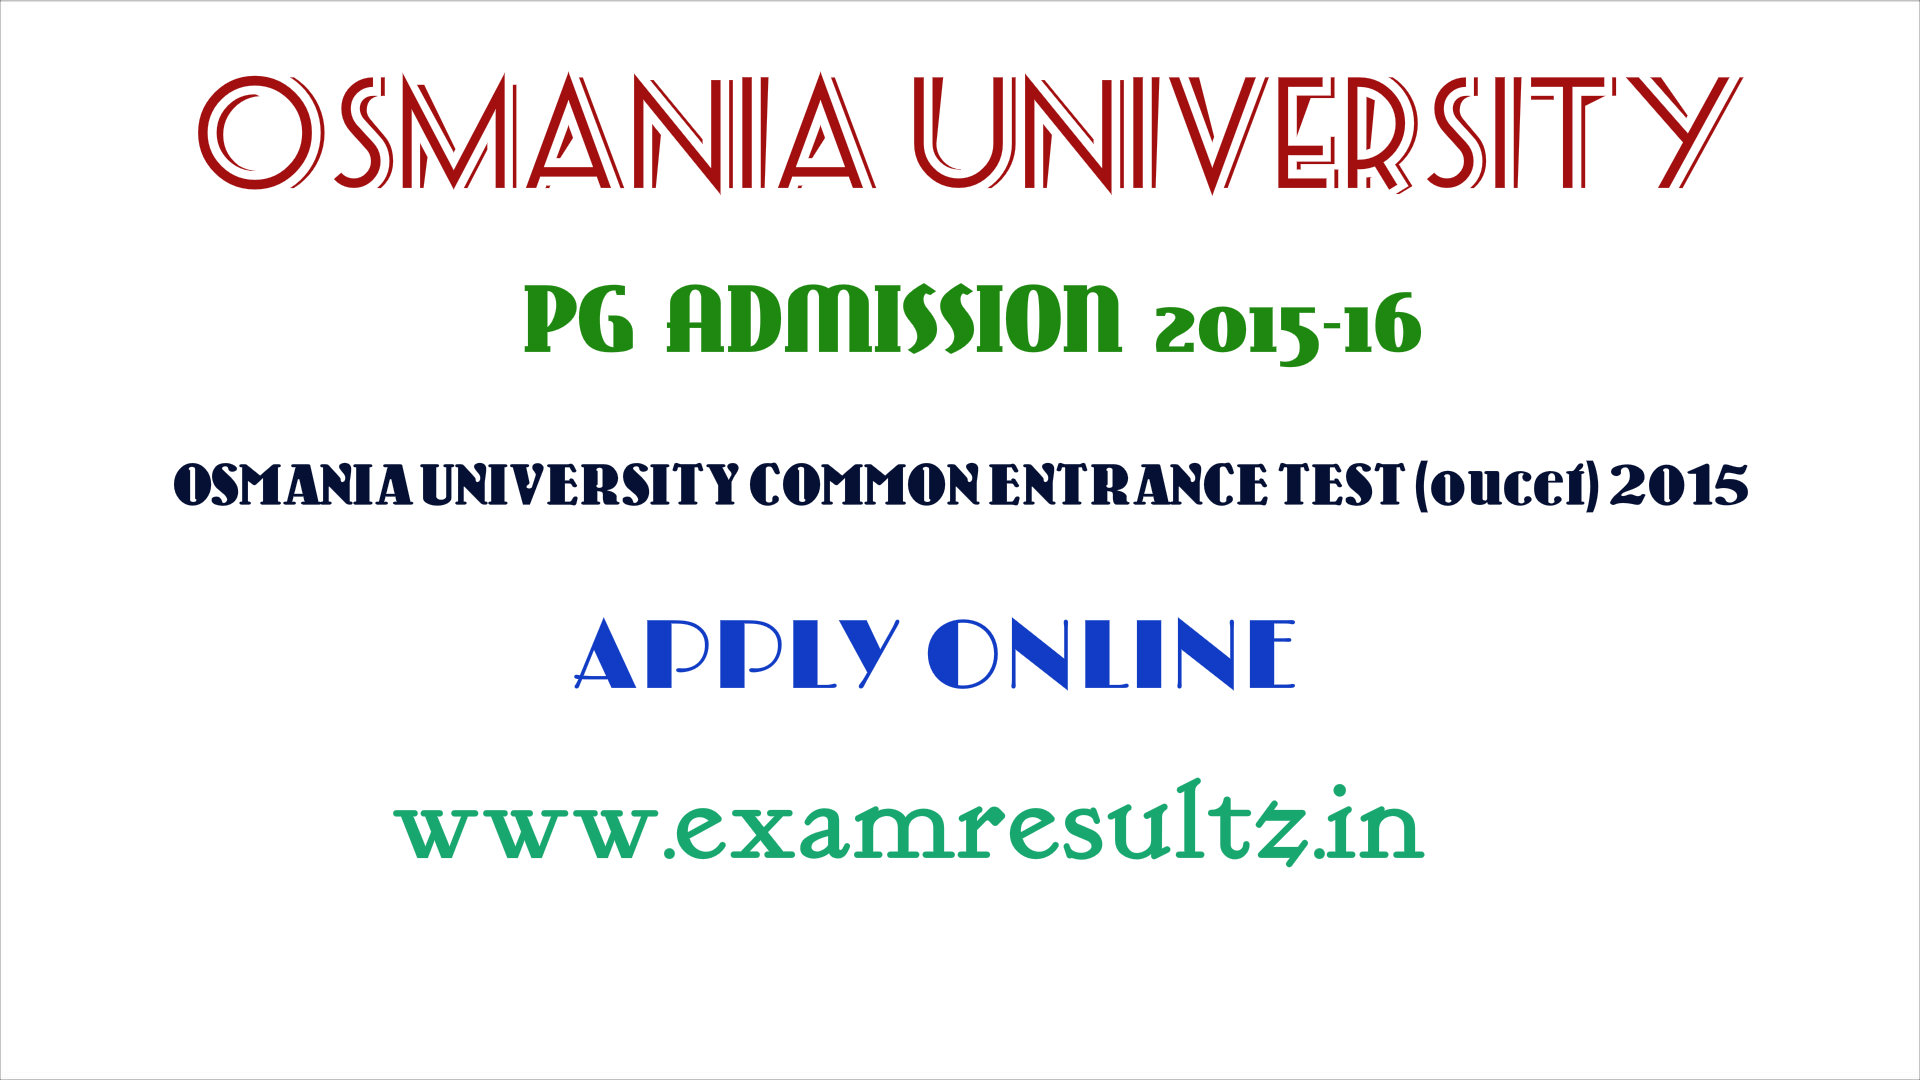 Osmania University PG admission 2015 OUCEt test apply online application form